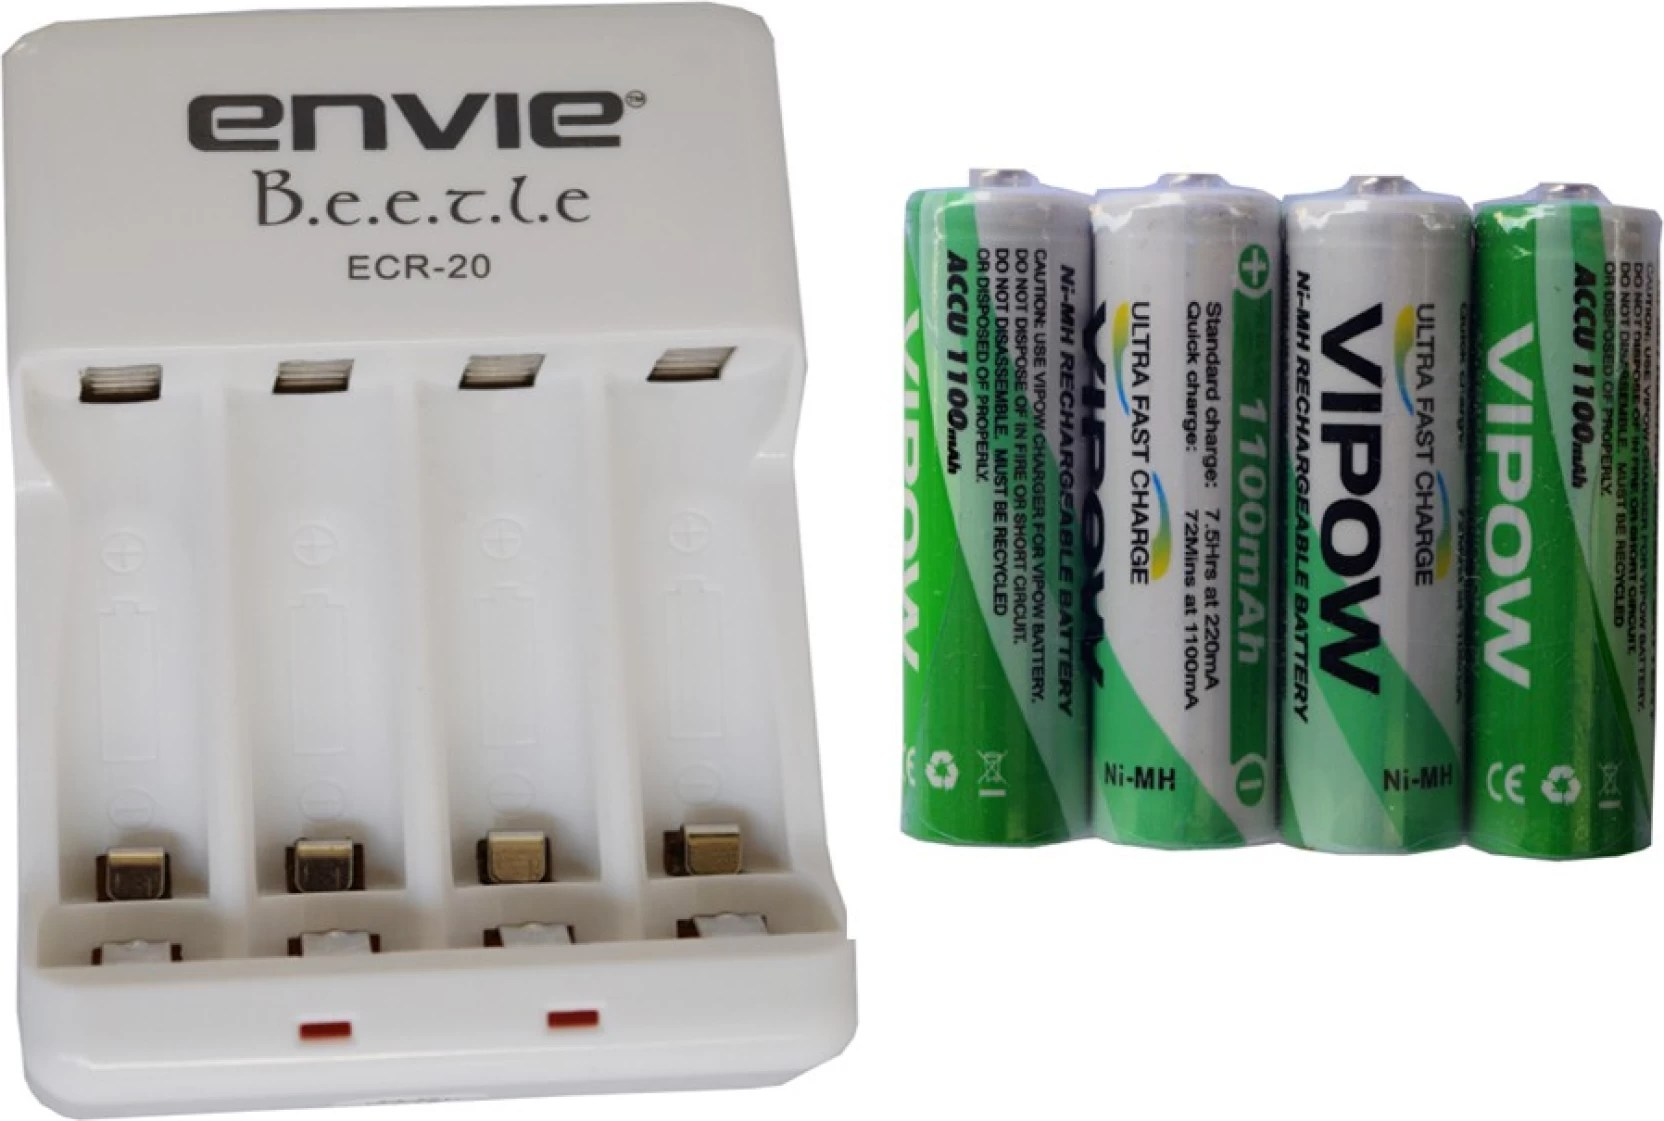 Accu Rechargeable Creator Envie For 2 4 Aa Aaa Batteries Charger Vipow Aa Accu 1100